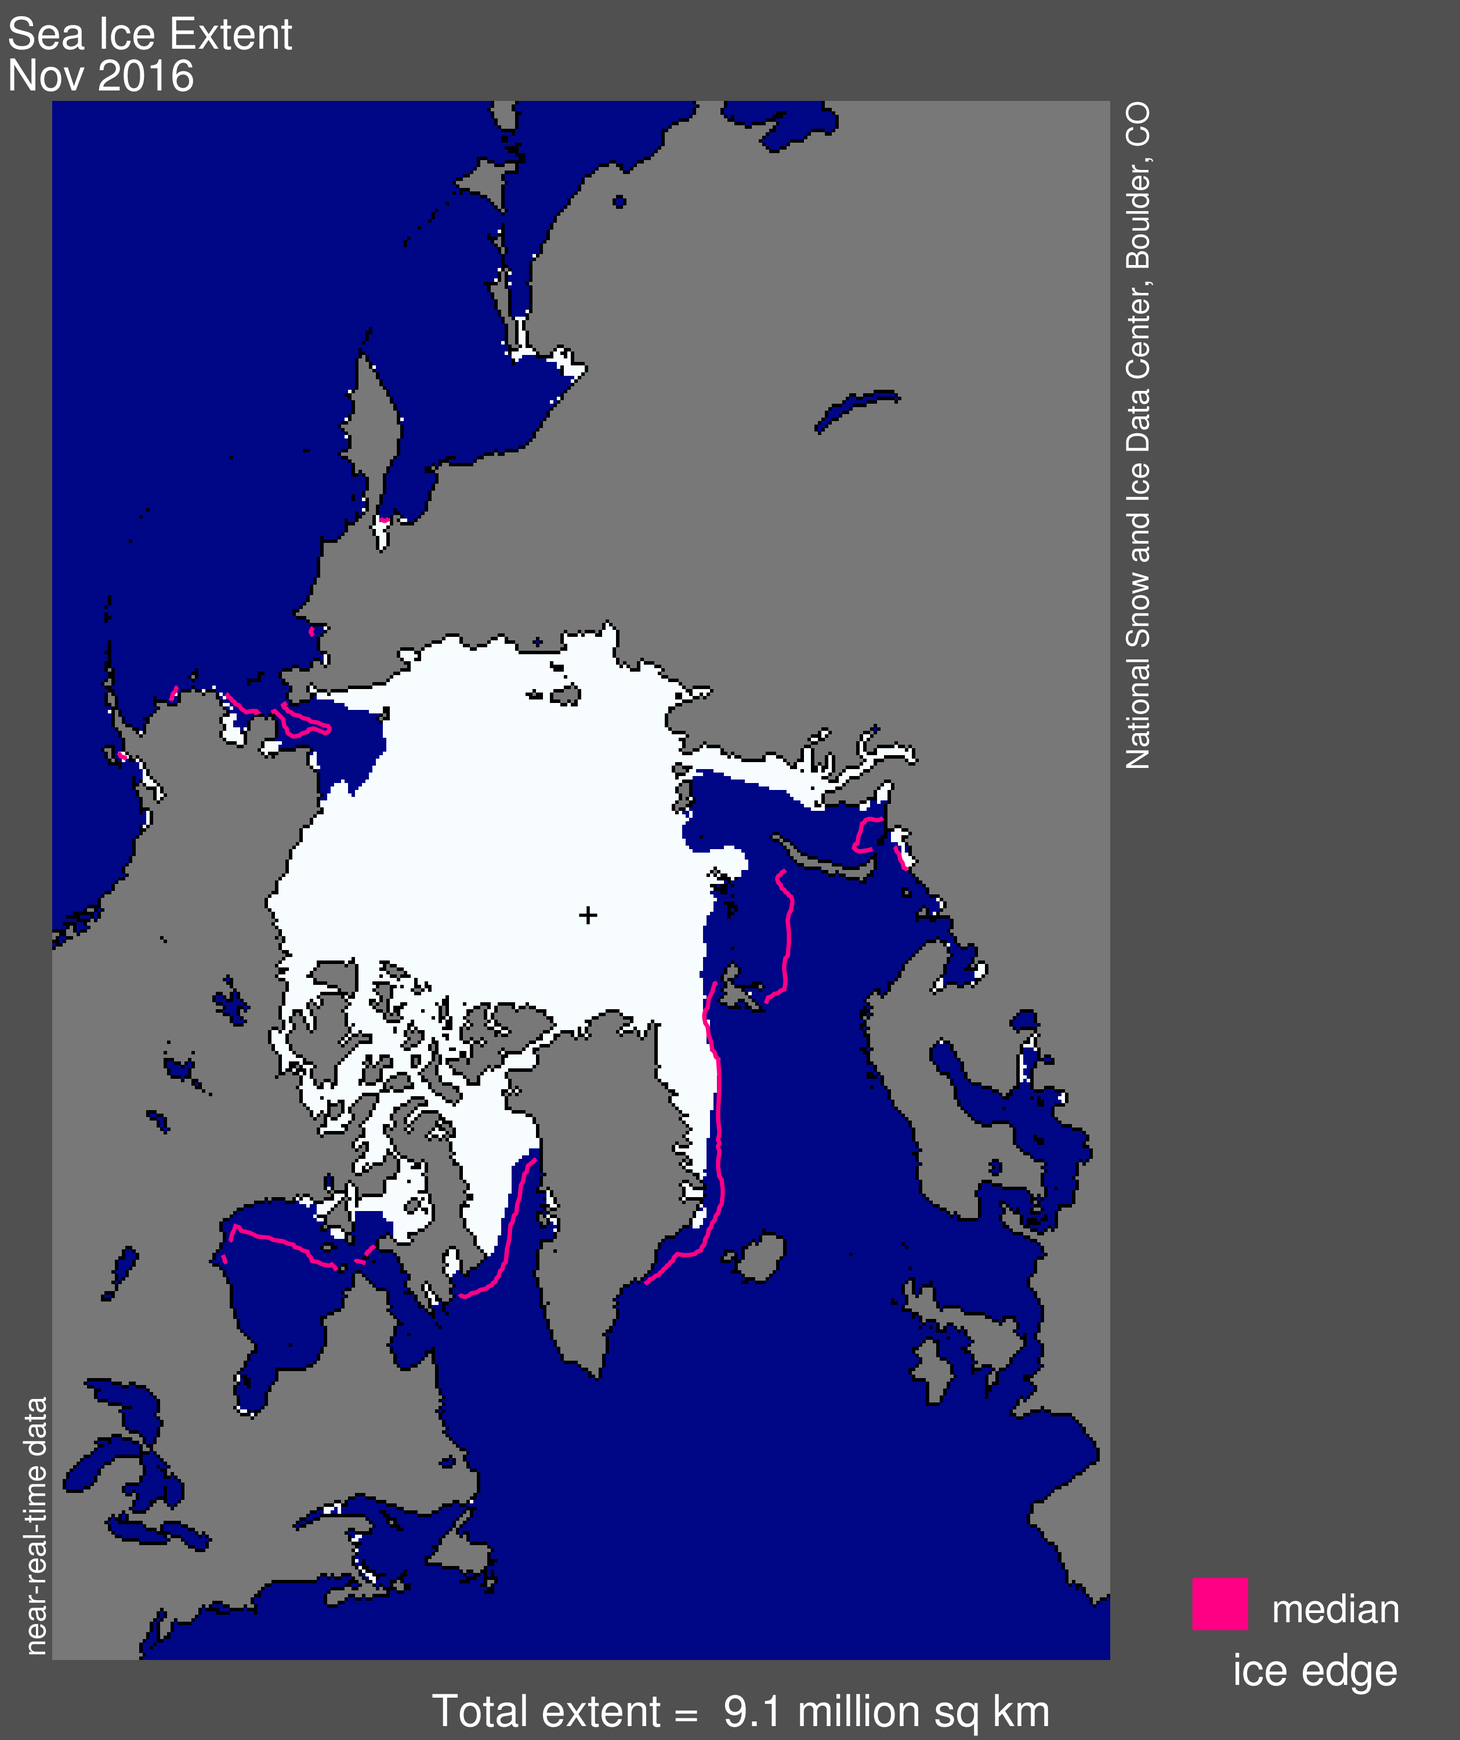 Arctic ice index